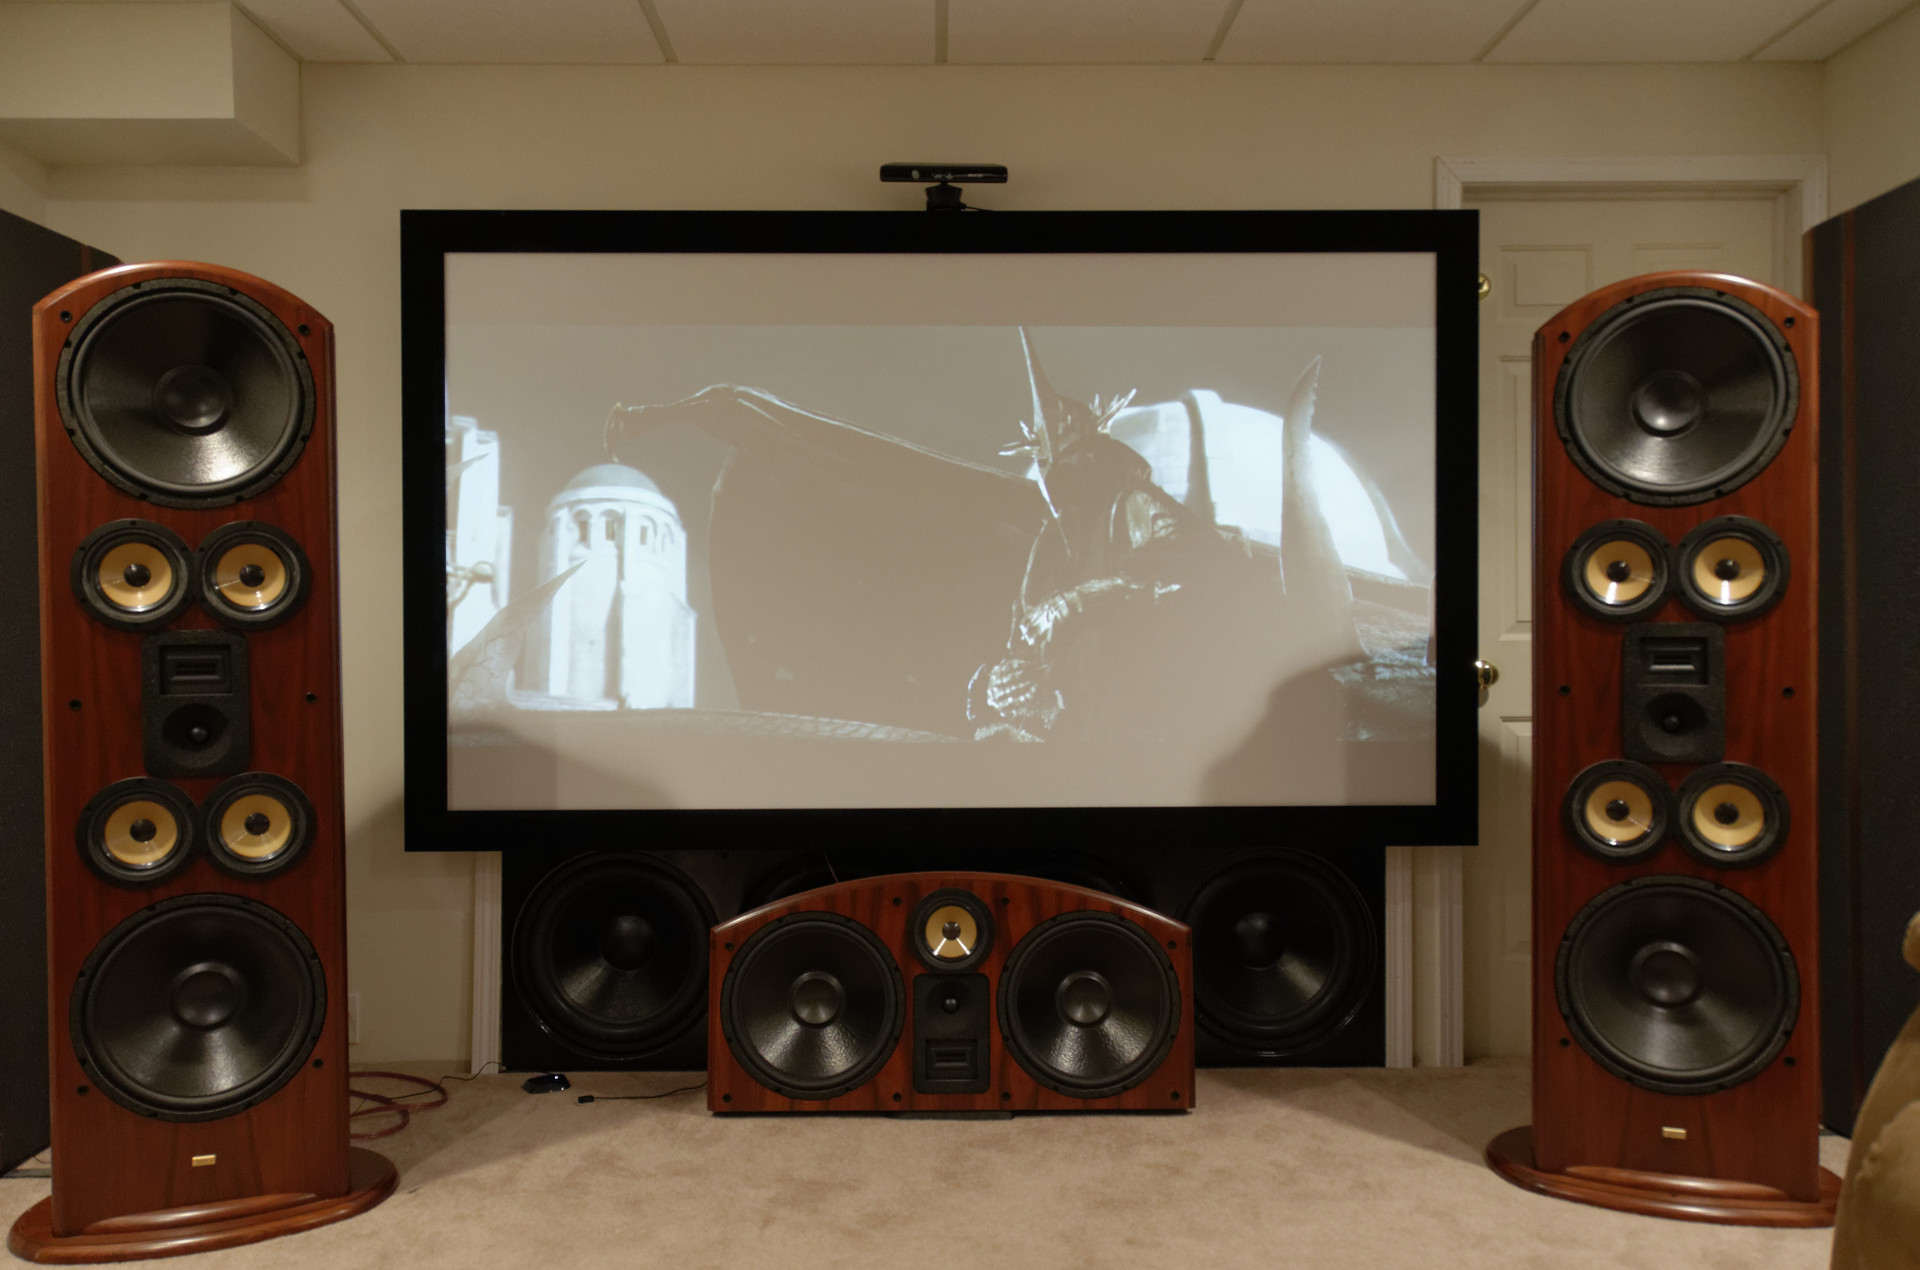 bdlitzer's Home Theater Gallery - Home Theater (18 photos)